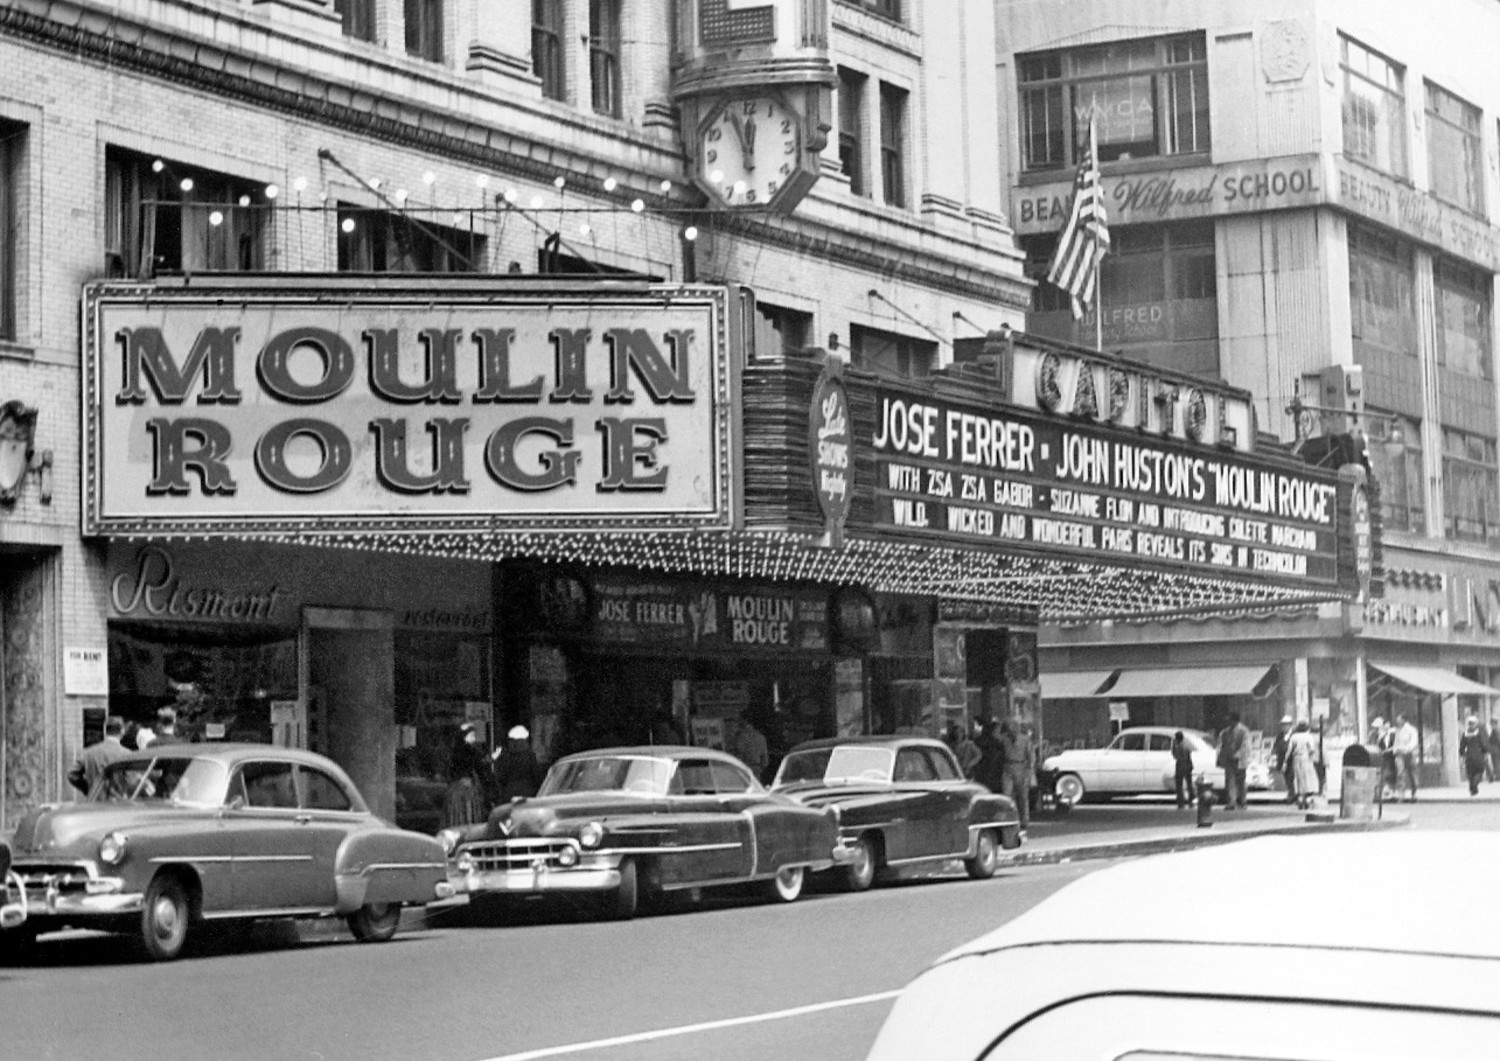 Moulin Rouge, May 17, 1953